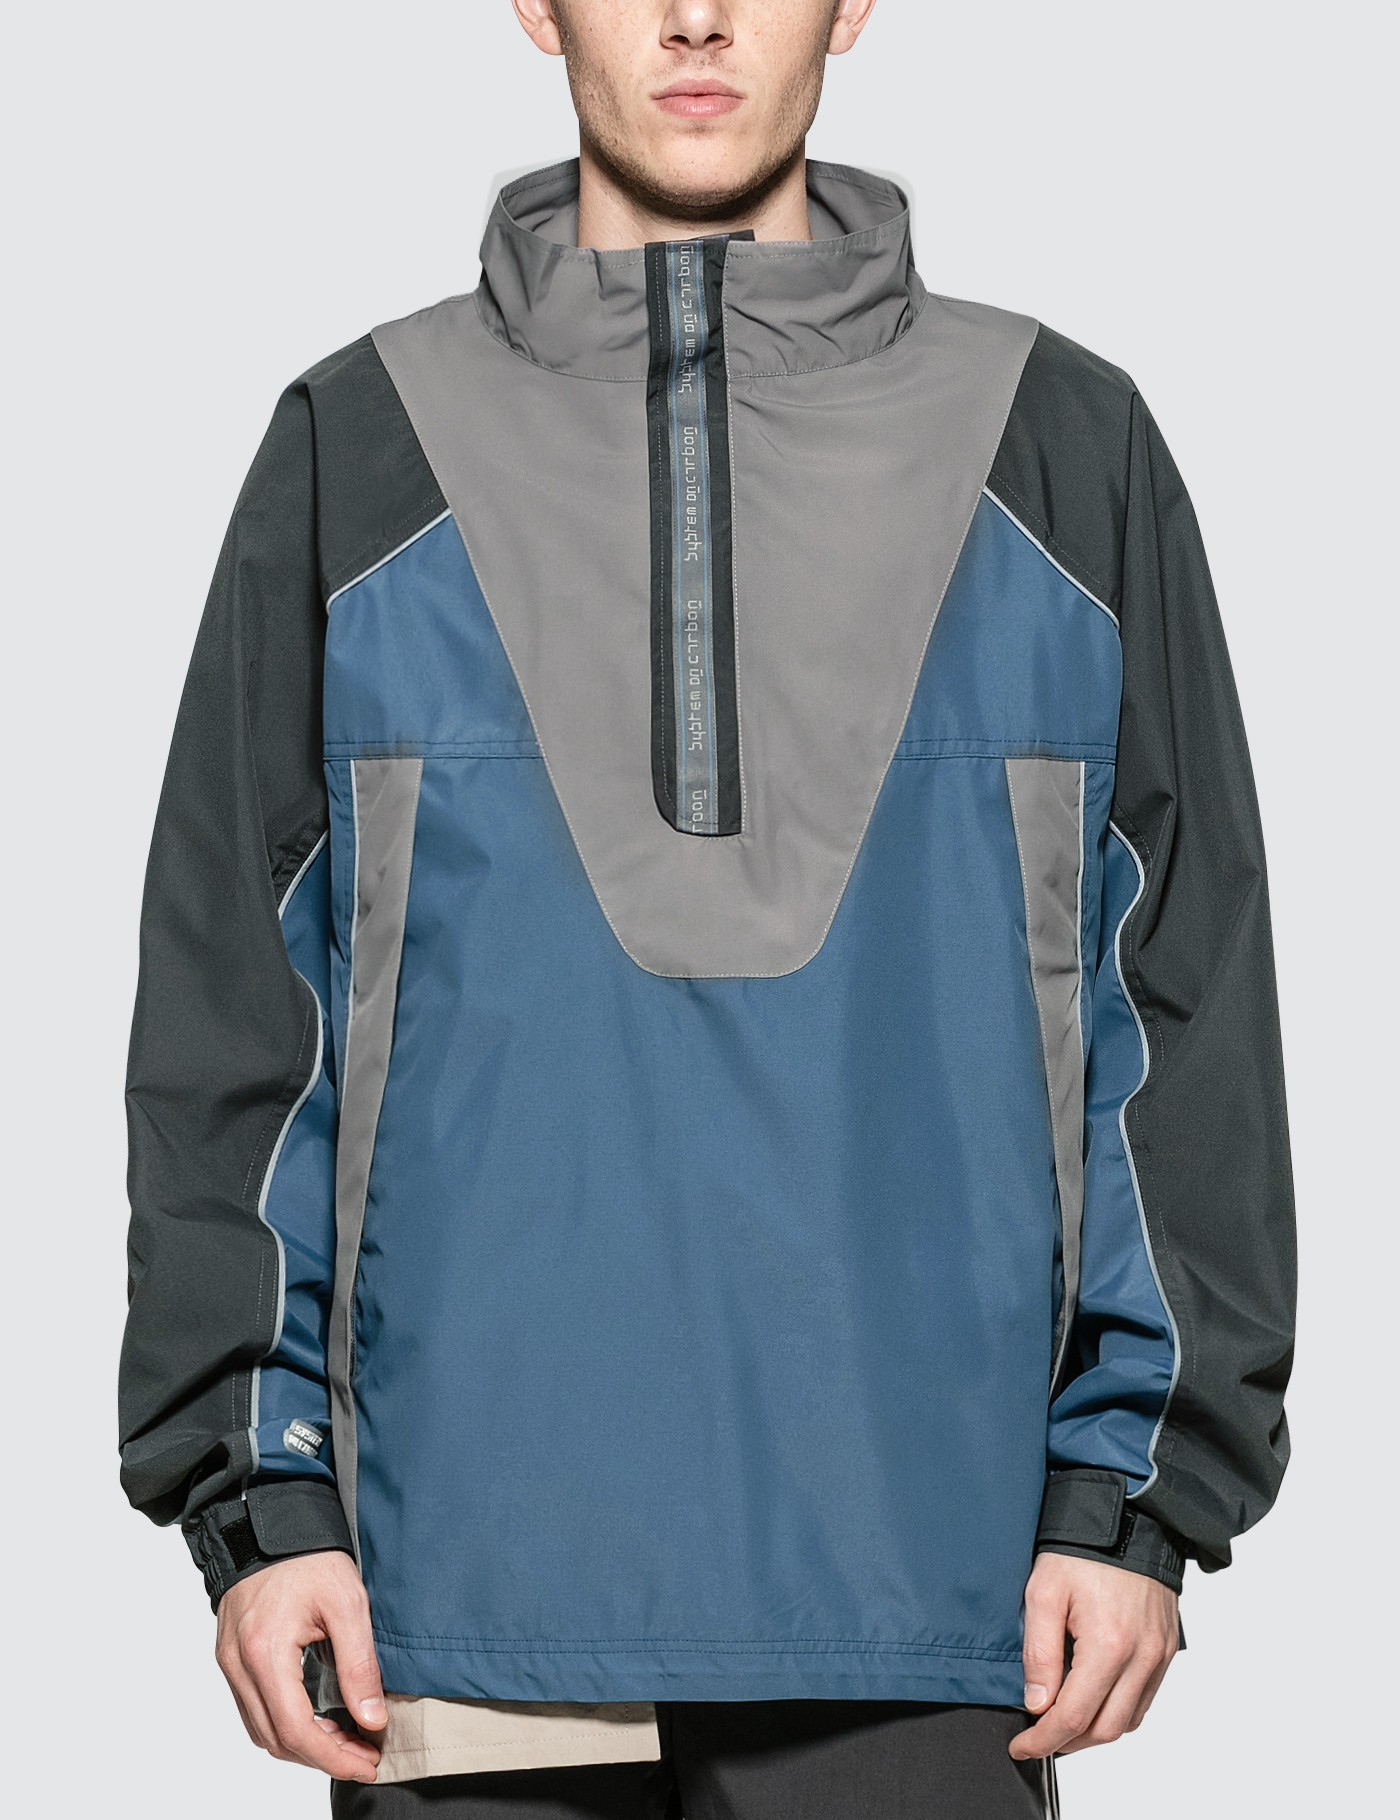 C2H4 Los Angeles Inside Out 3M Seamline Pullover Jacket Picture